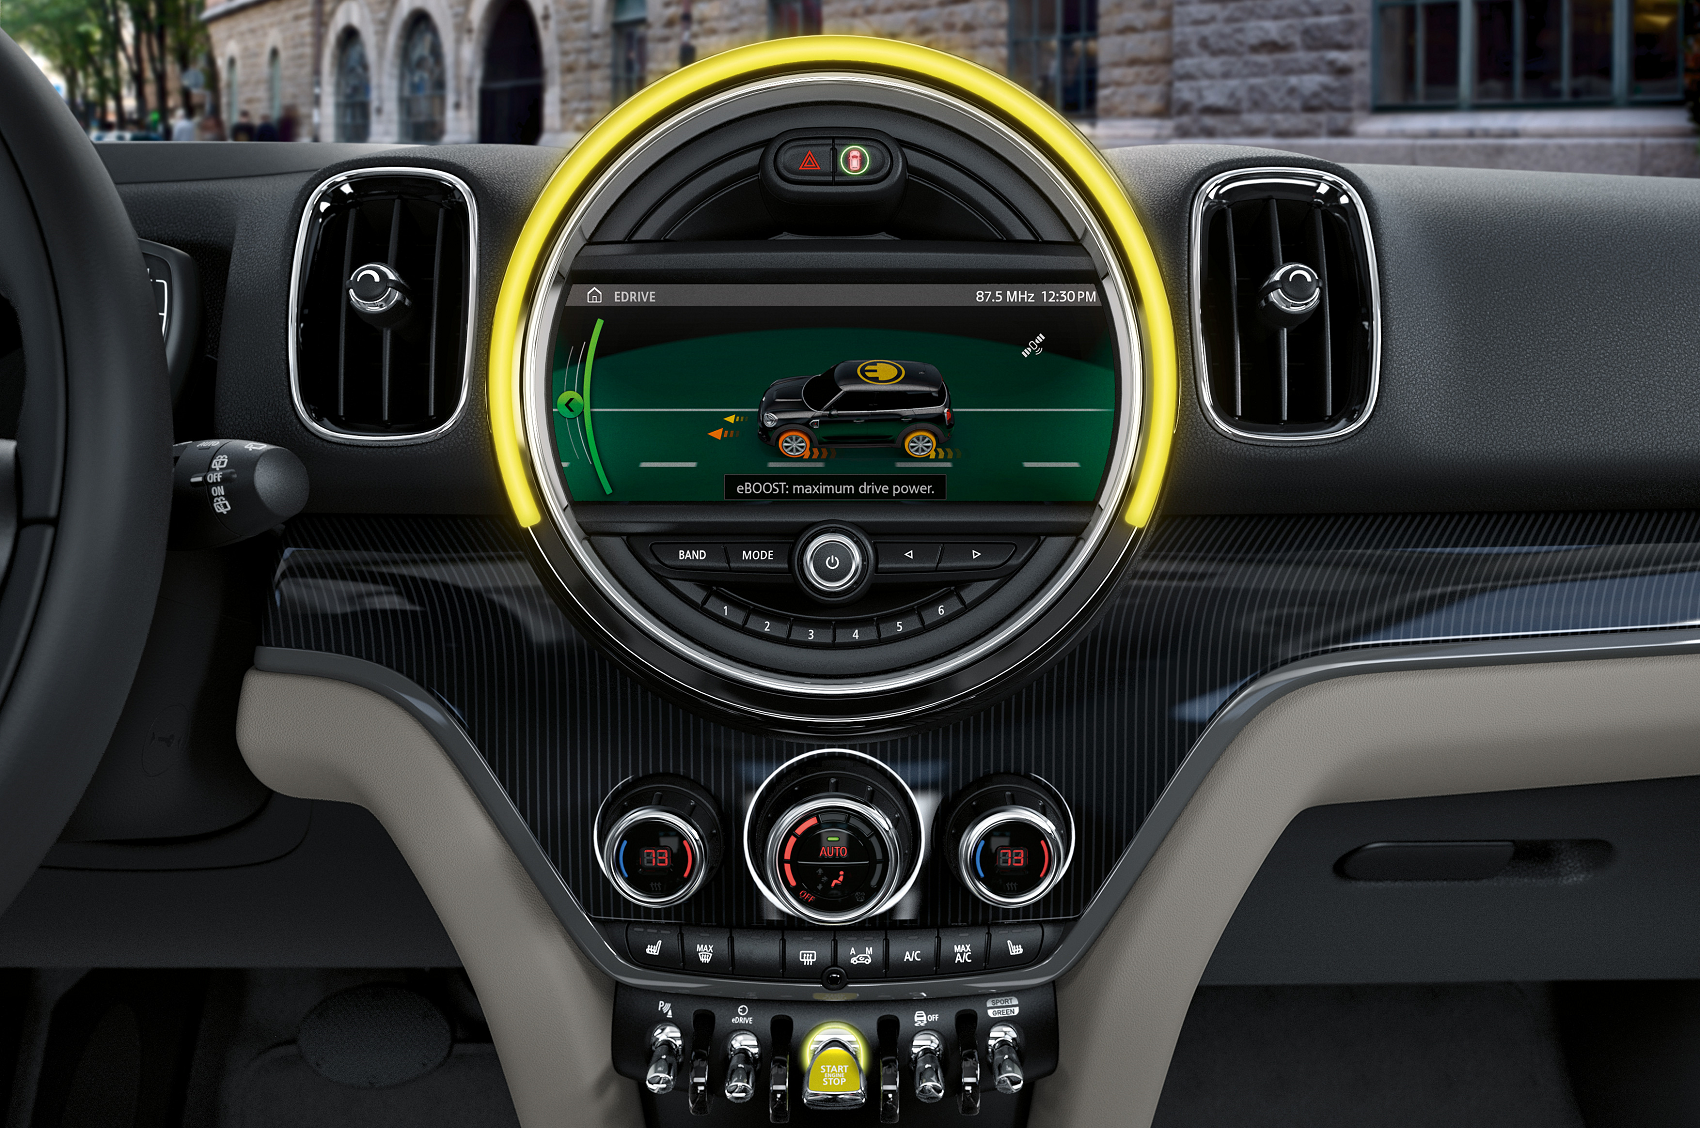 2019 Mini Countryman PHEV Interior Technology